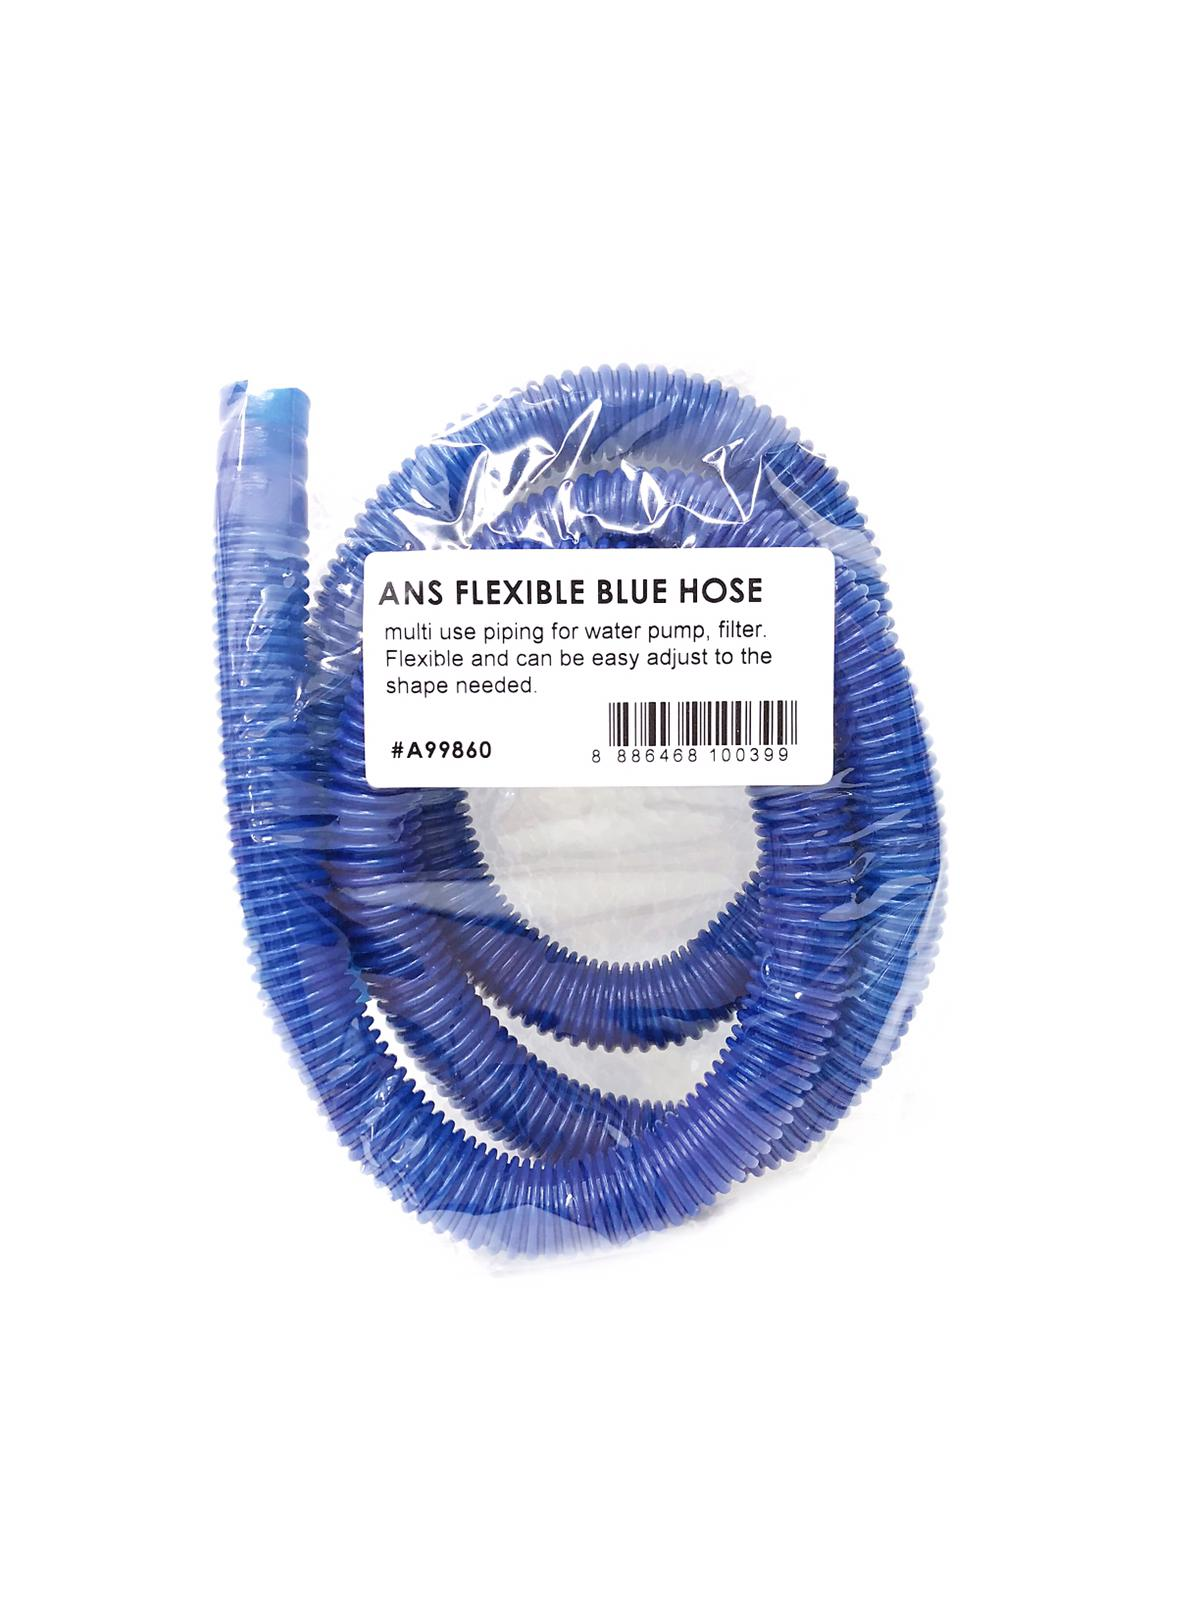 Ans Flexible Blue Hose